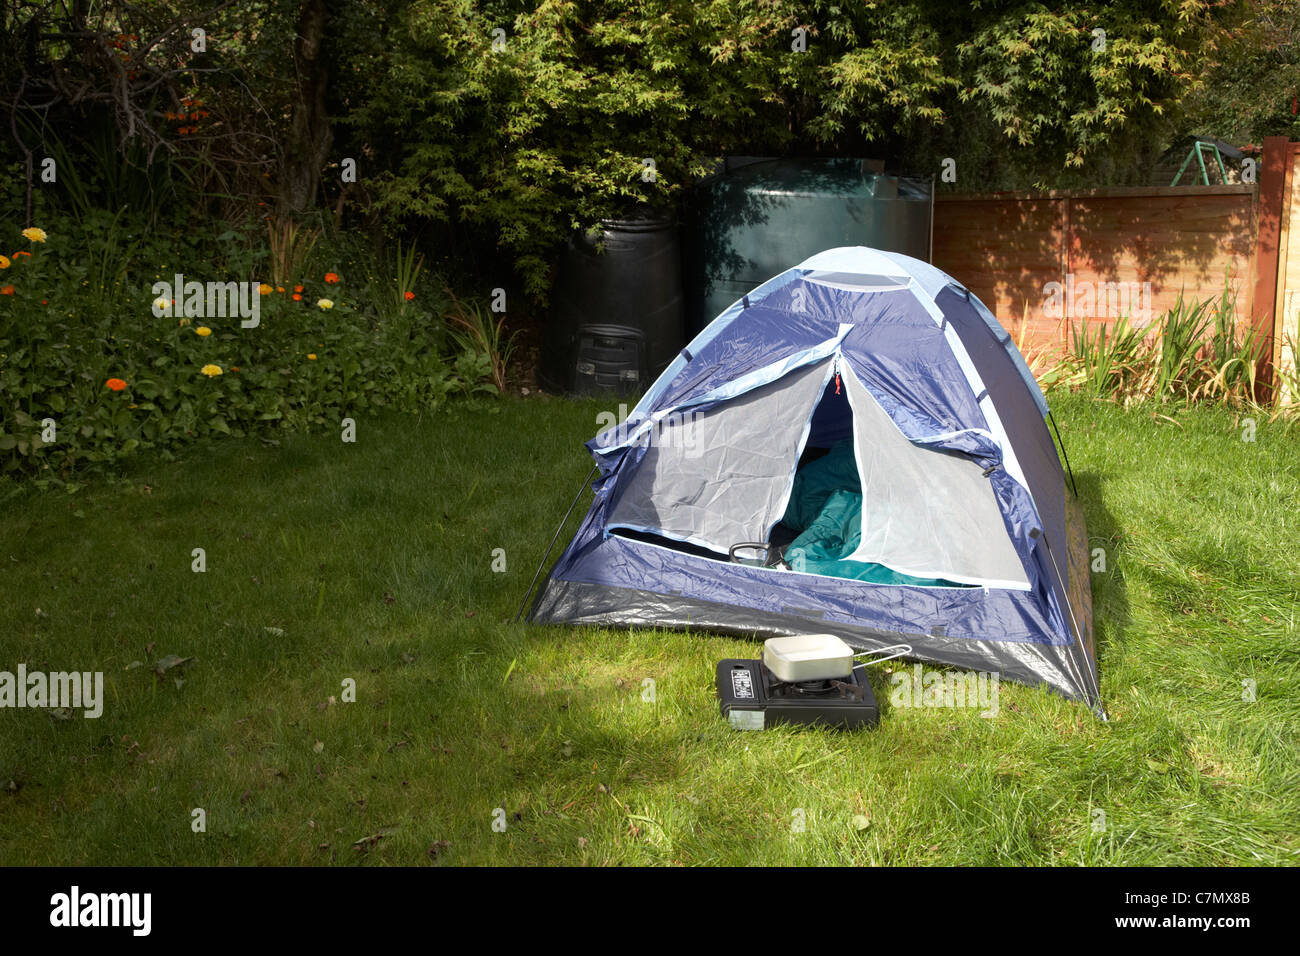 front door left open on a small dome tent pitched in the garden of the house in the uk & front door left open on a small dome tent pitched in the garden of ...